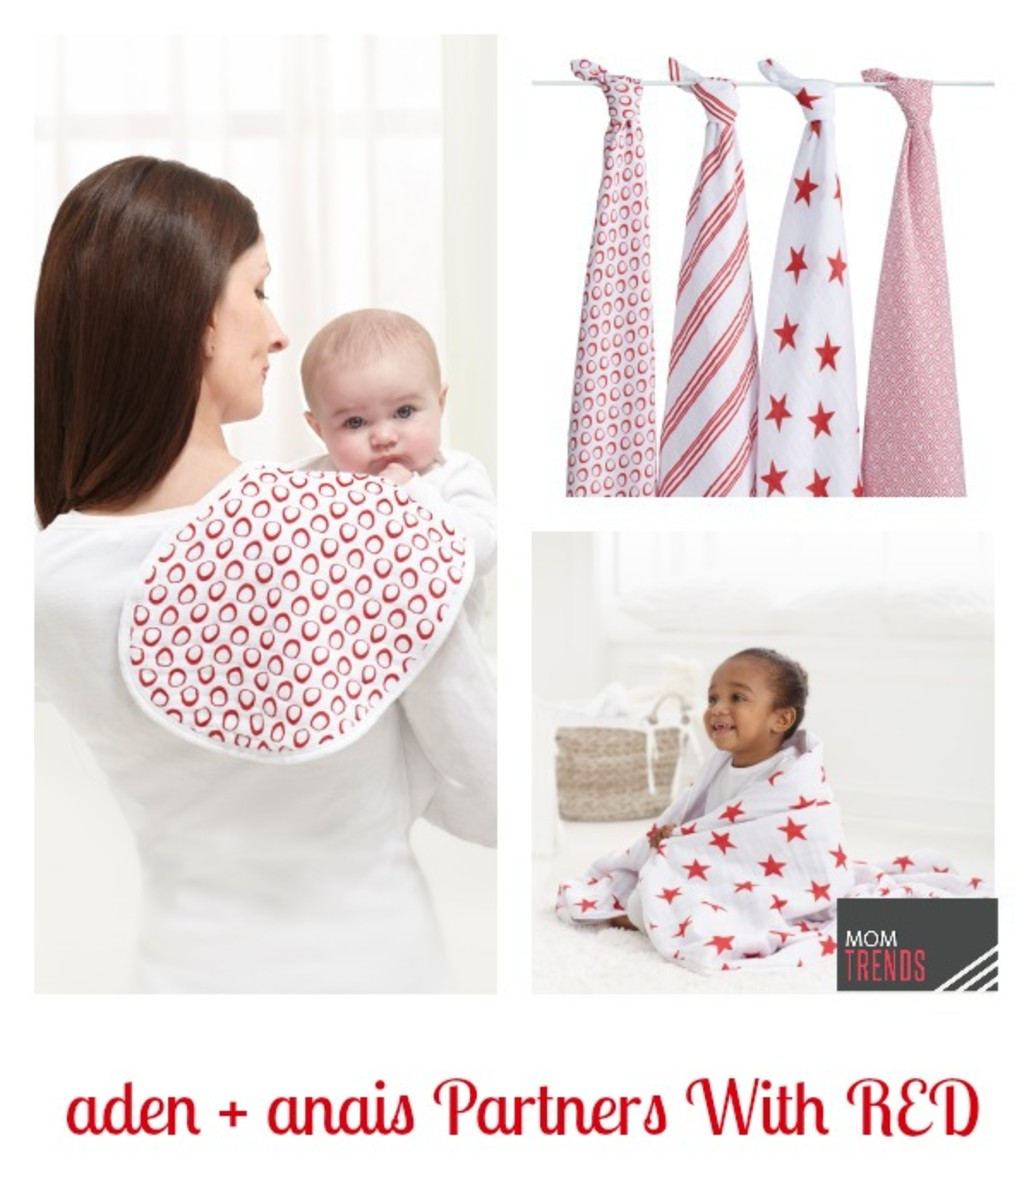 aden + anais Partners With RED.jpg.jpg